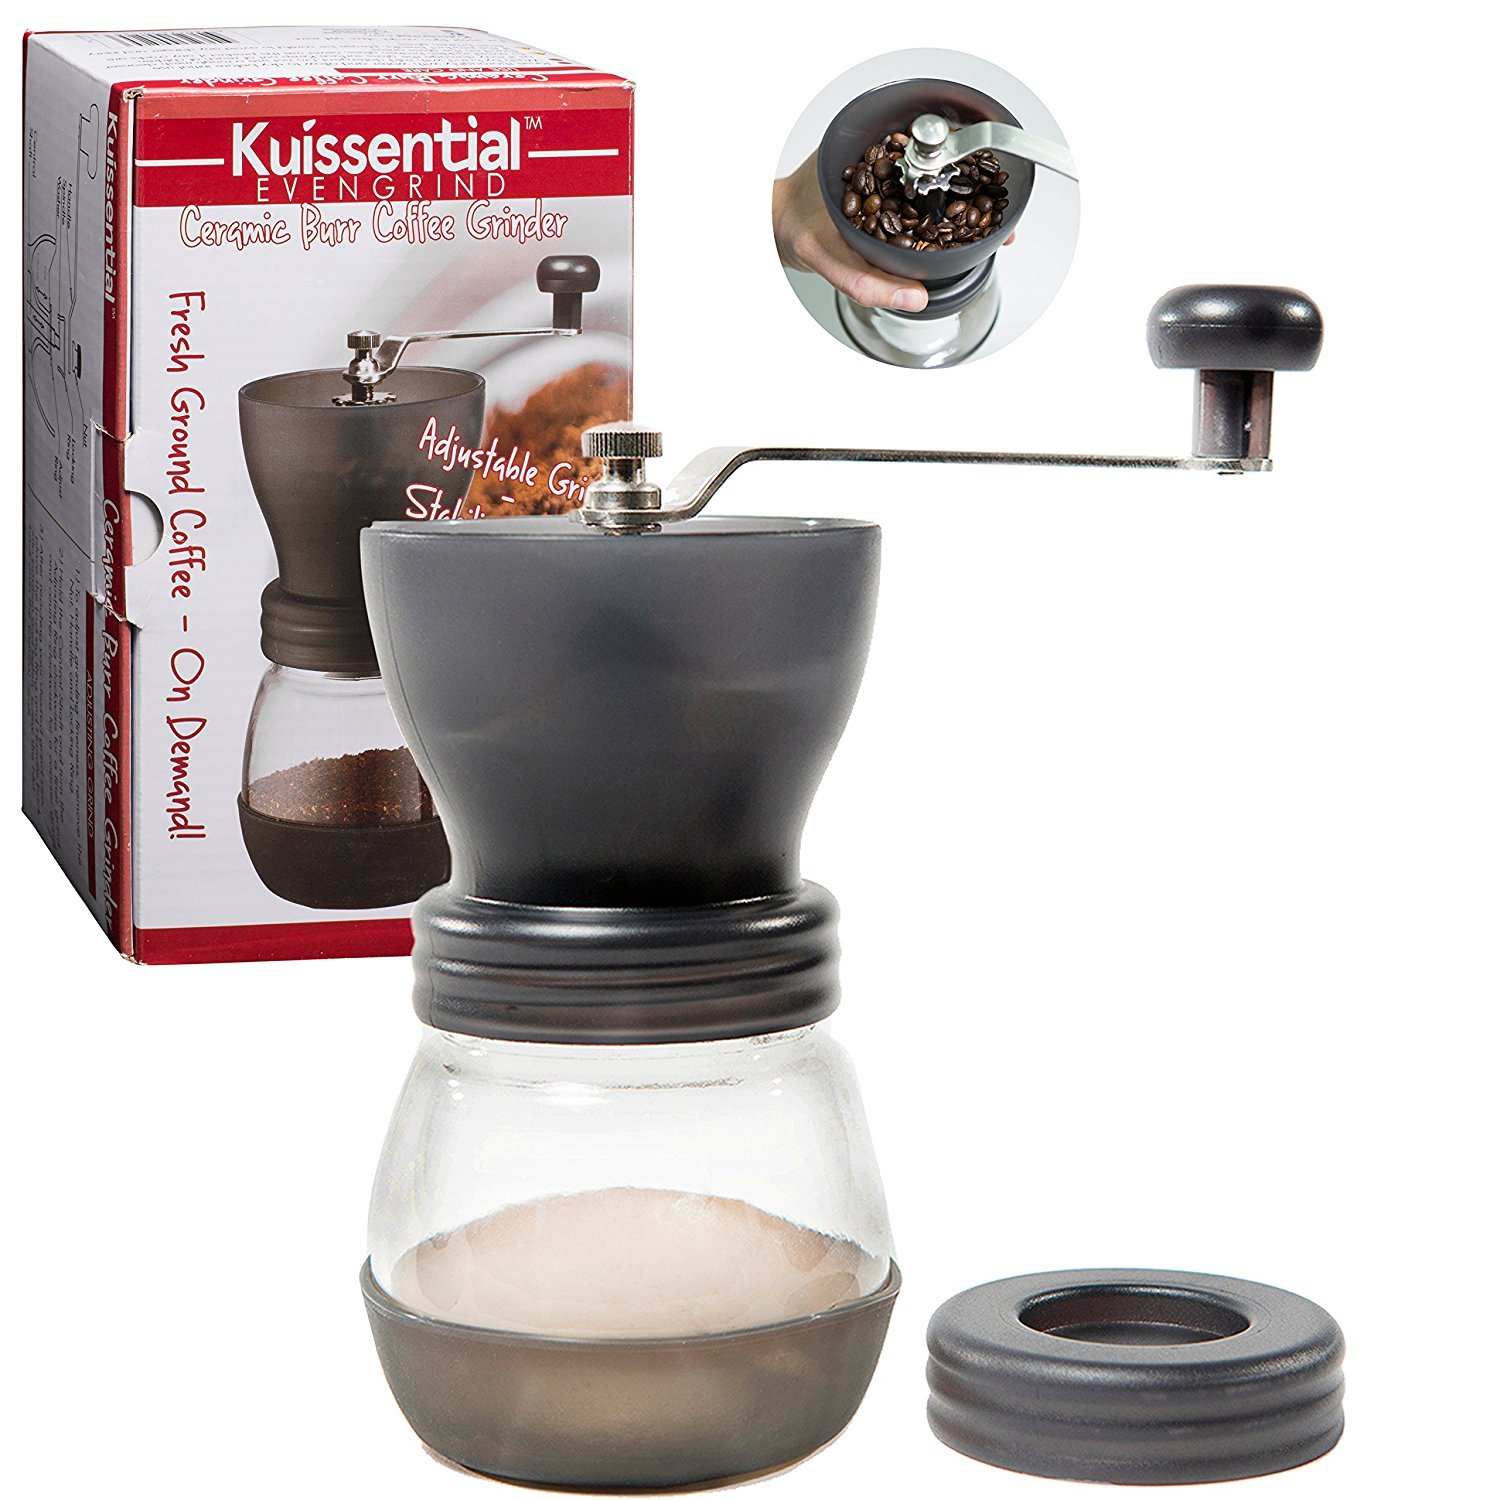 Coffee Burr Grinder- The Original EvenGrind Manual Ceramic Burr Grinder with Patented Stability Cage- Even Coffee Grounds Guaranteed! by Kuissential KEG001